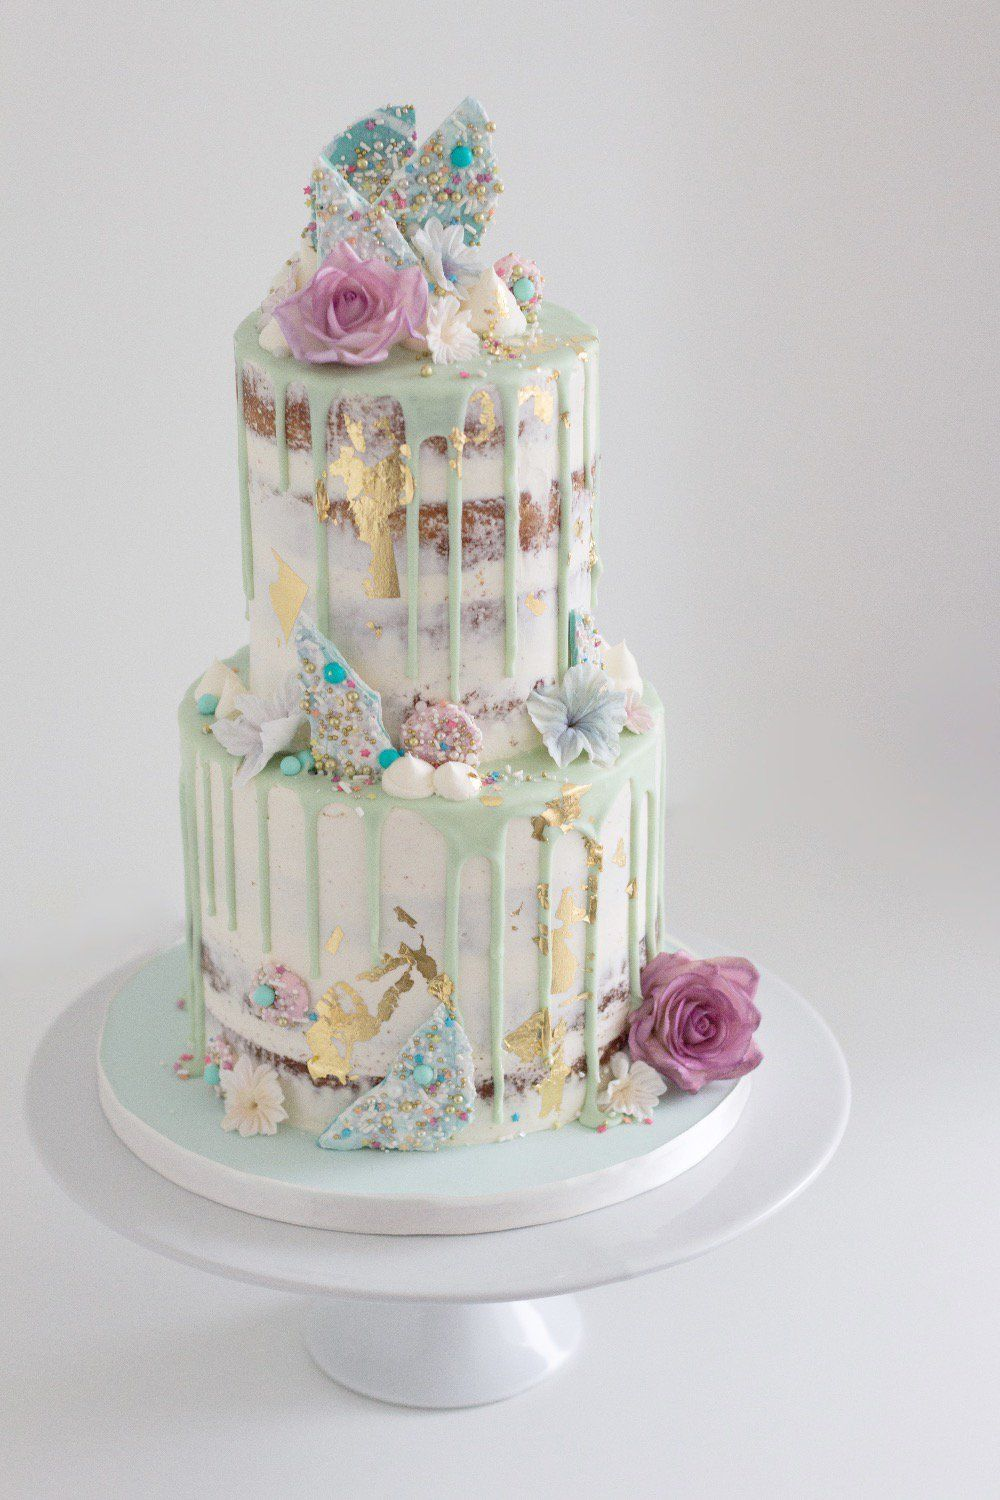 Pastel Aesthetic Birthday Cake